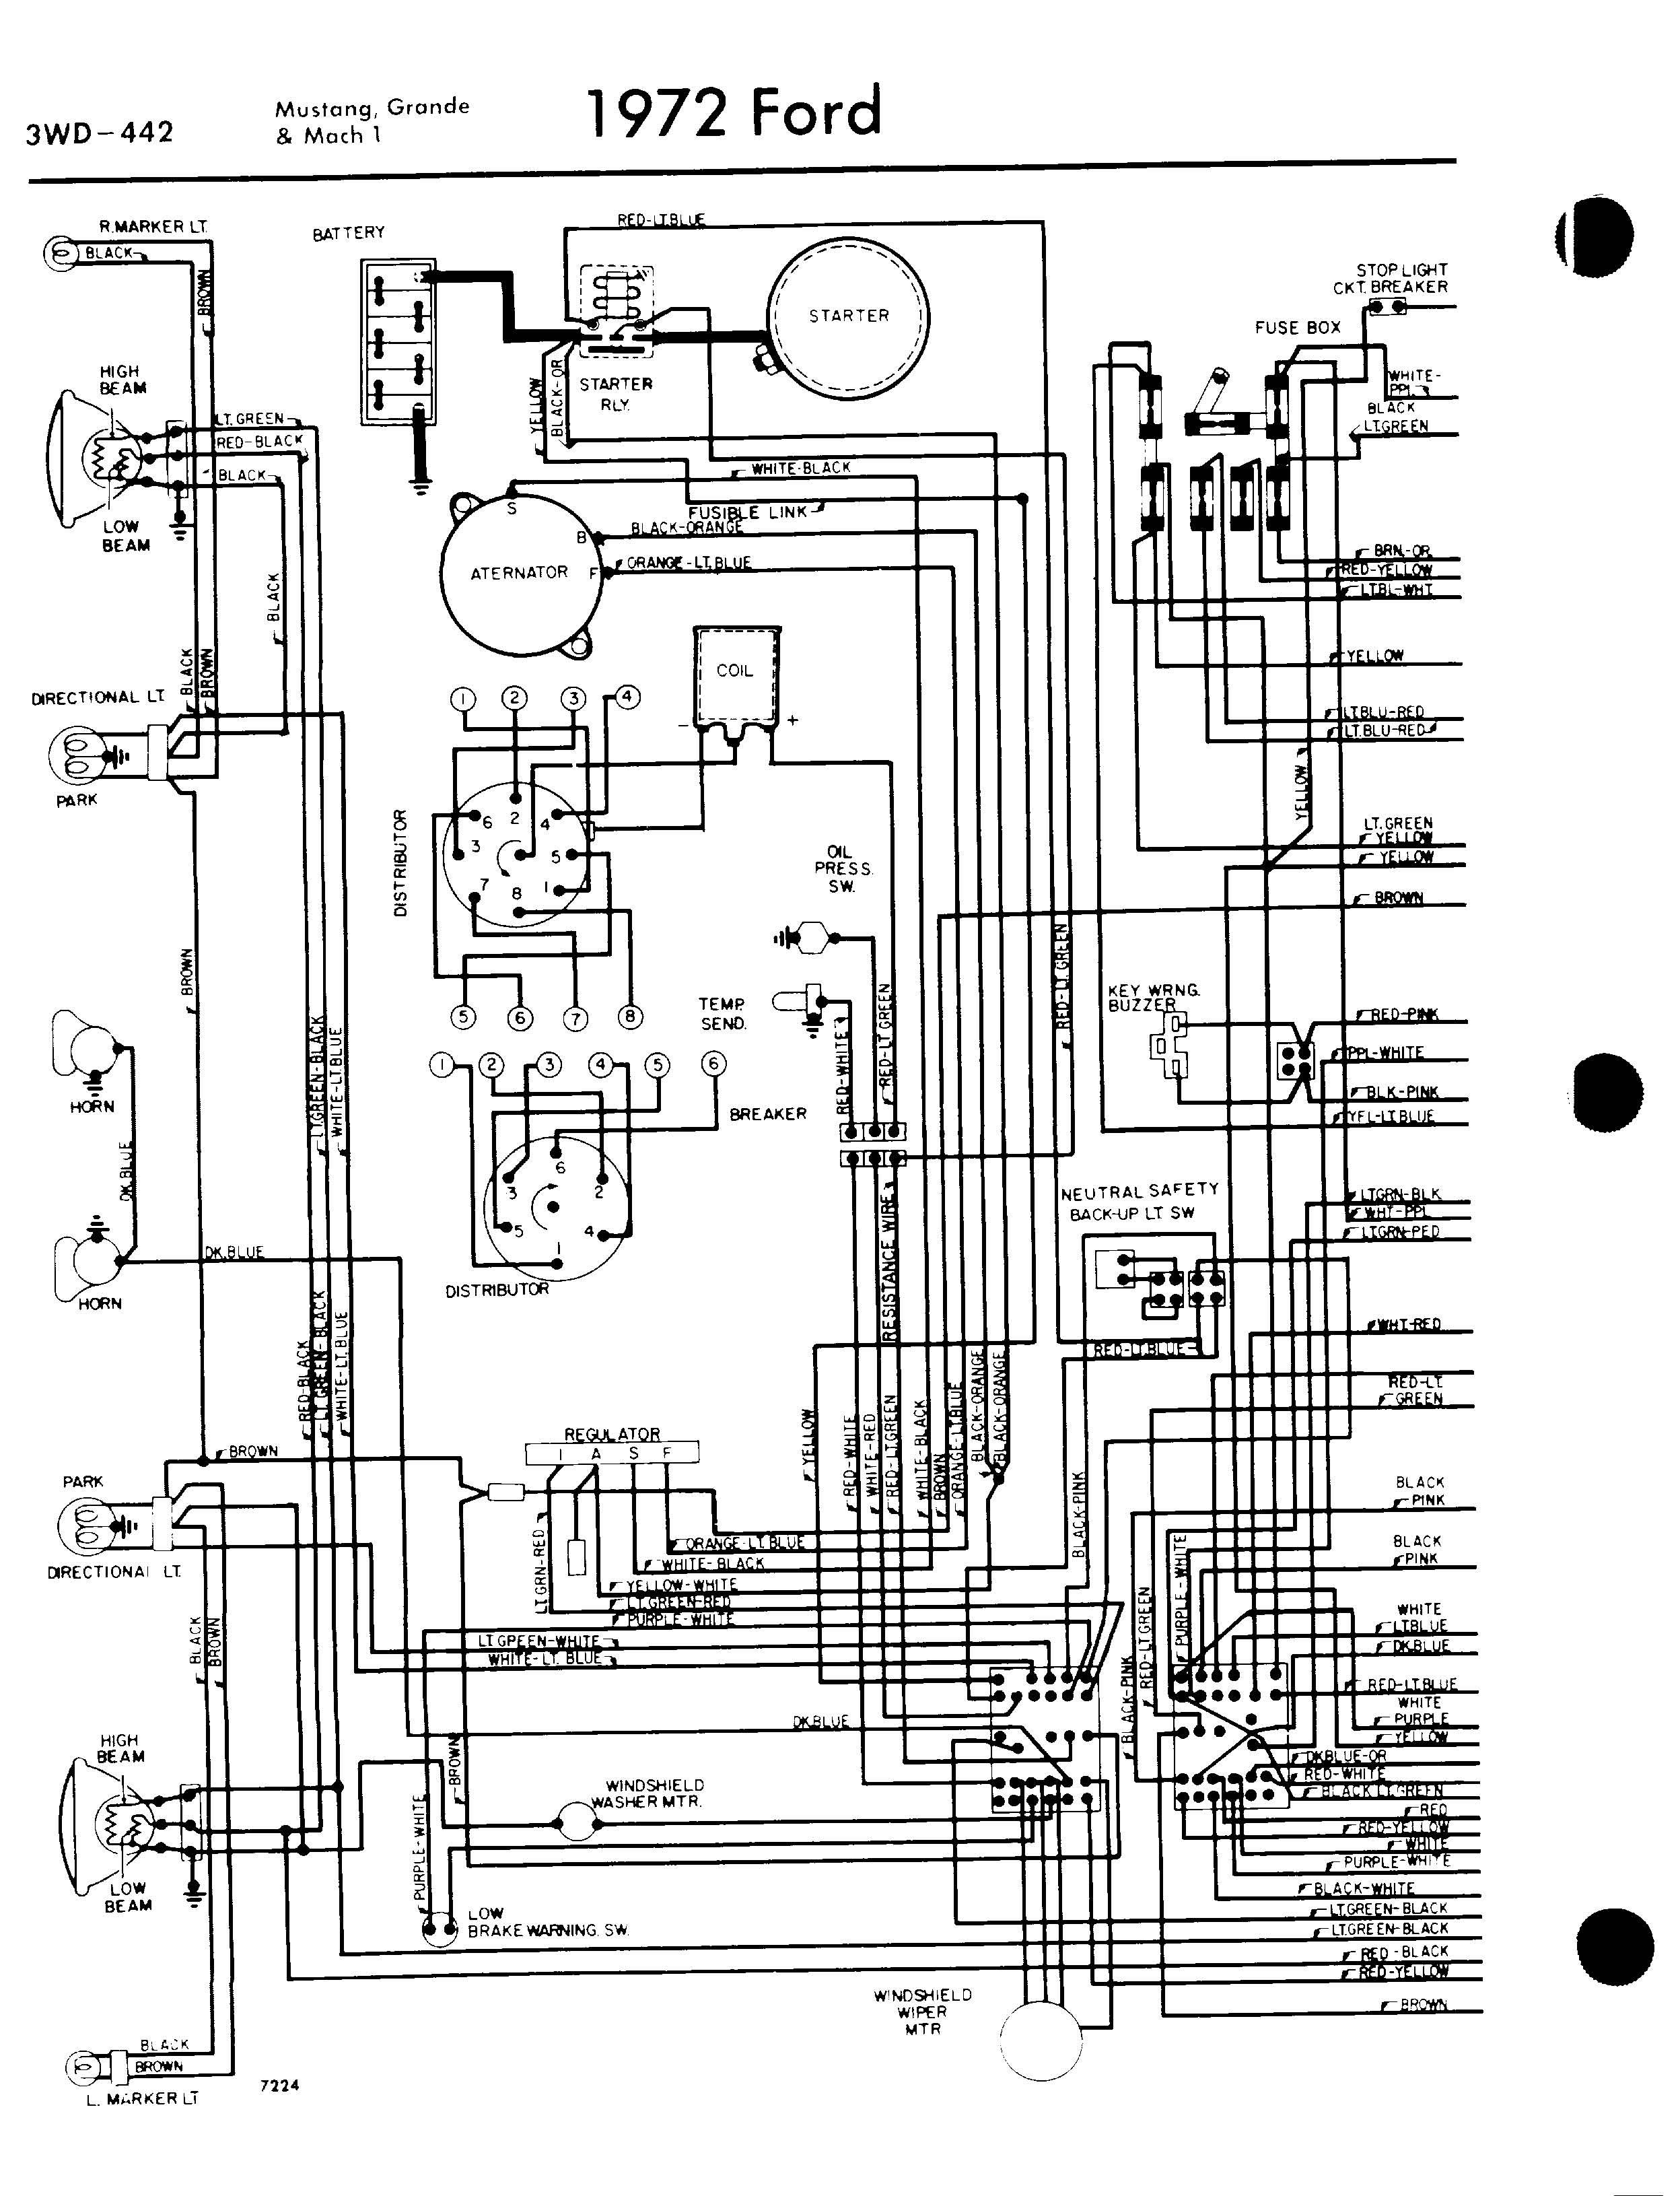 72 mach1 alternator wire harness diagram - yahoo search results yahoo image  search results